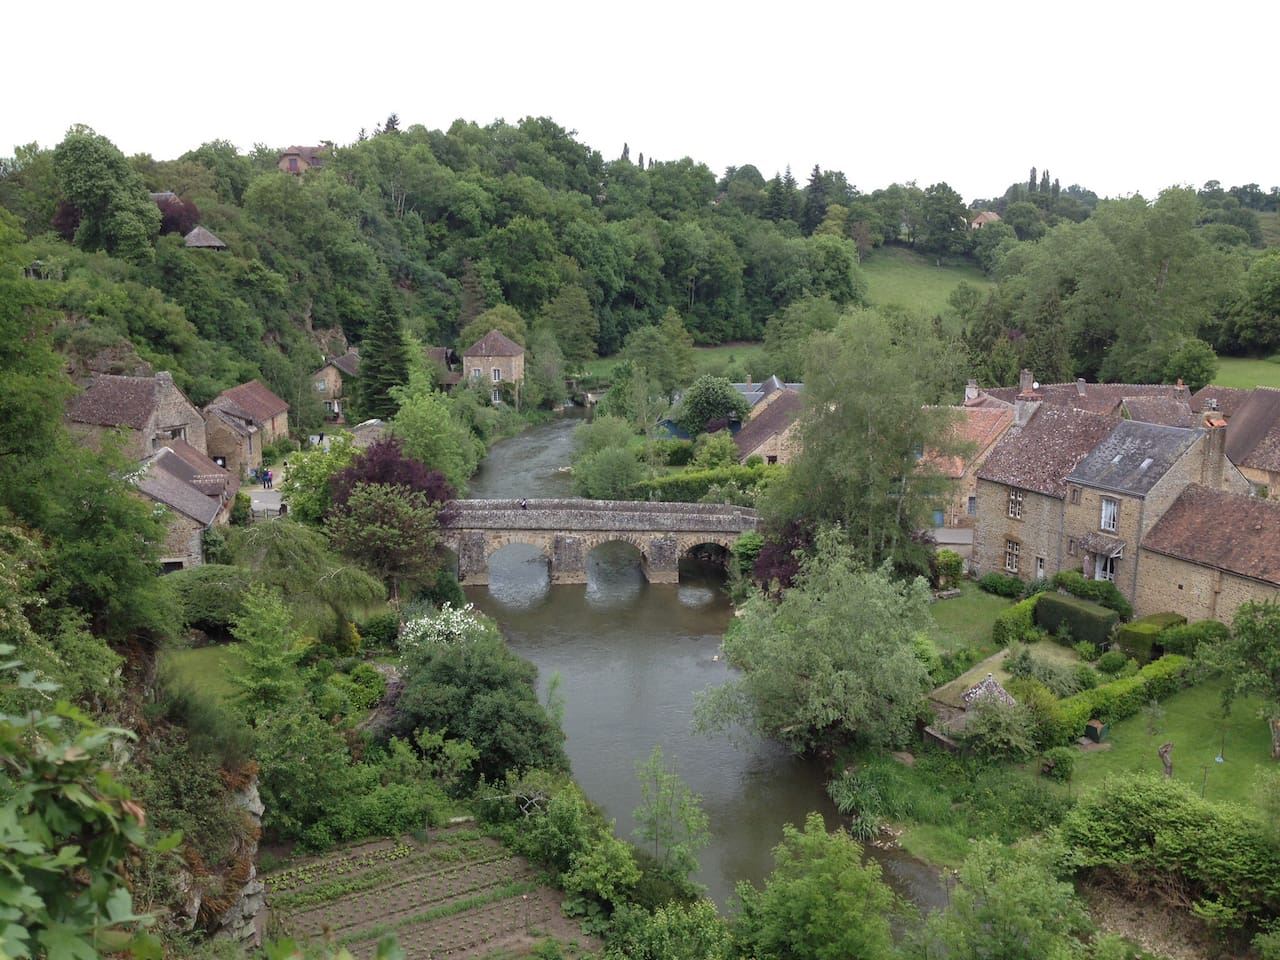 Pretty village a short distance from our home